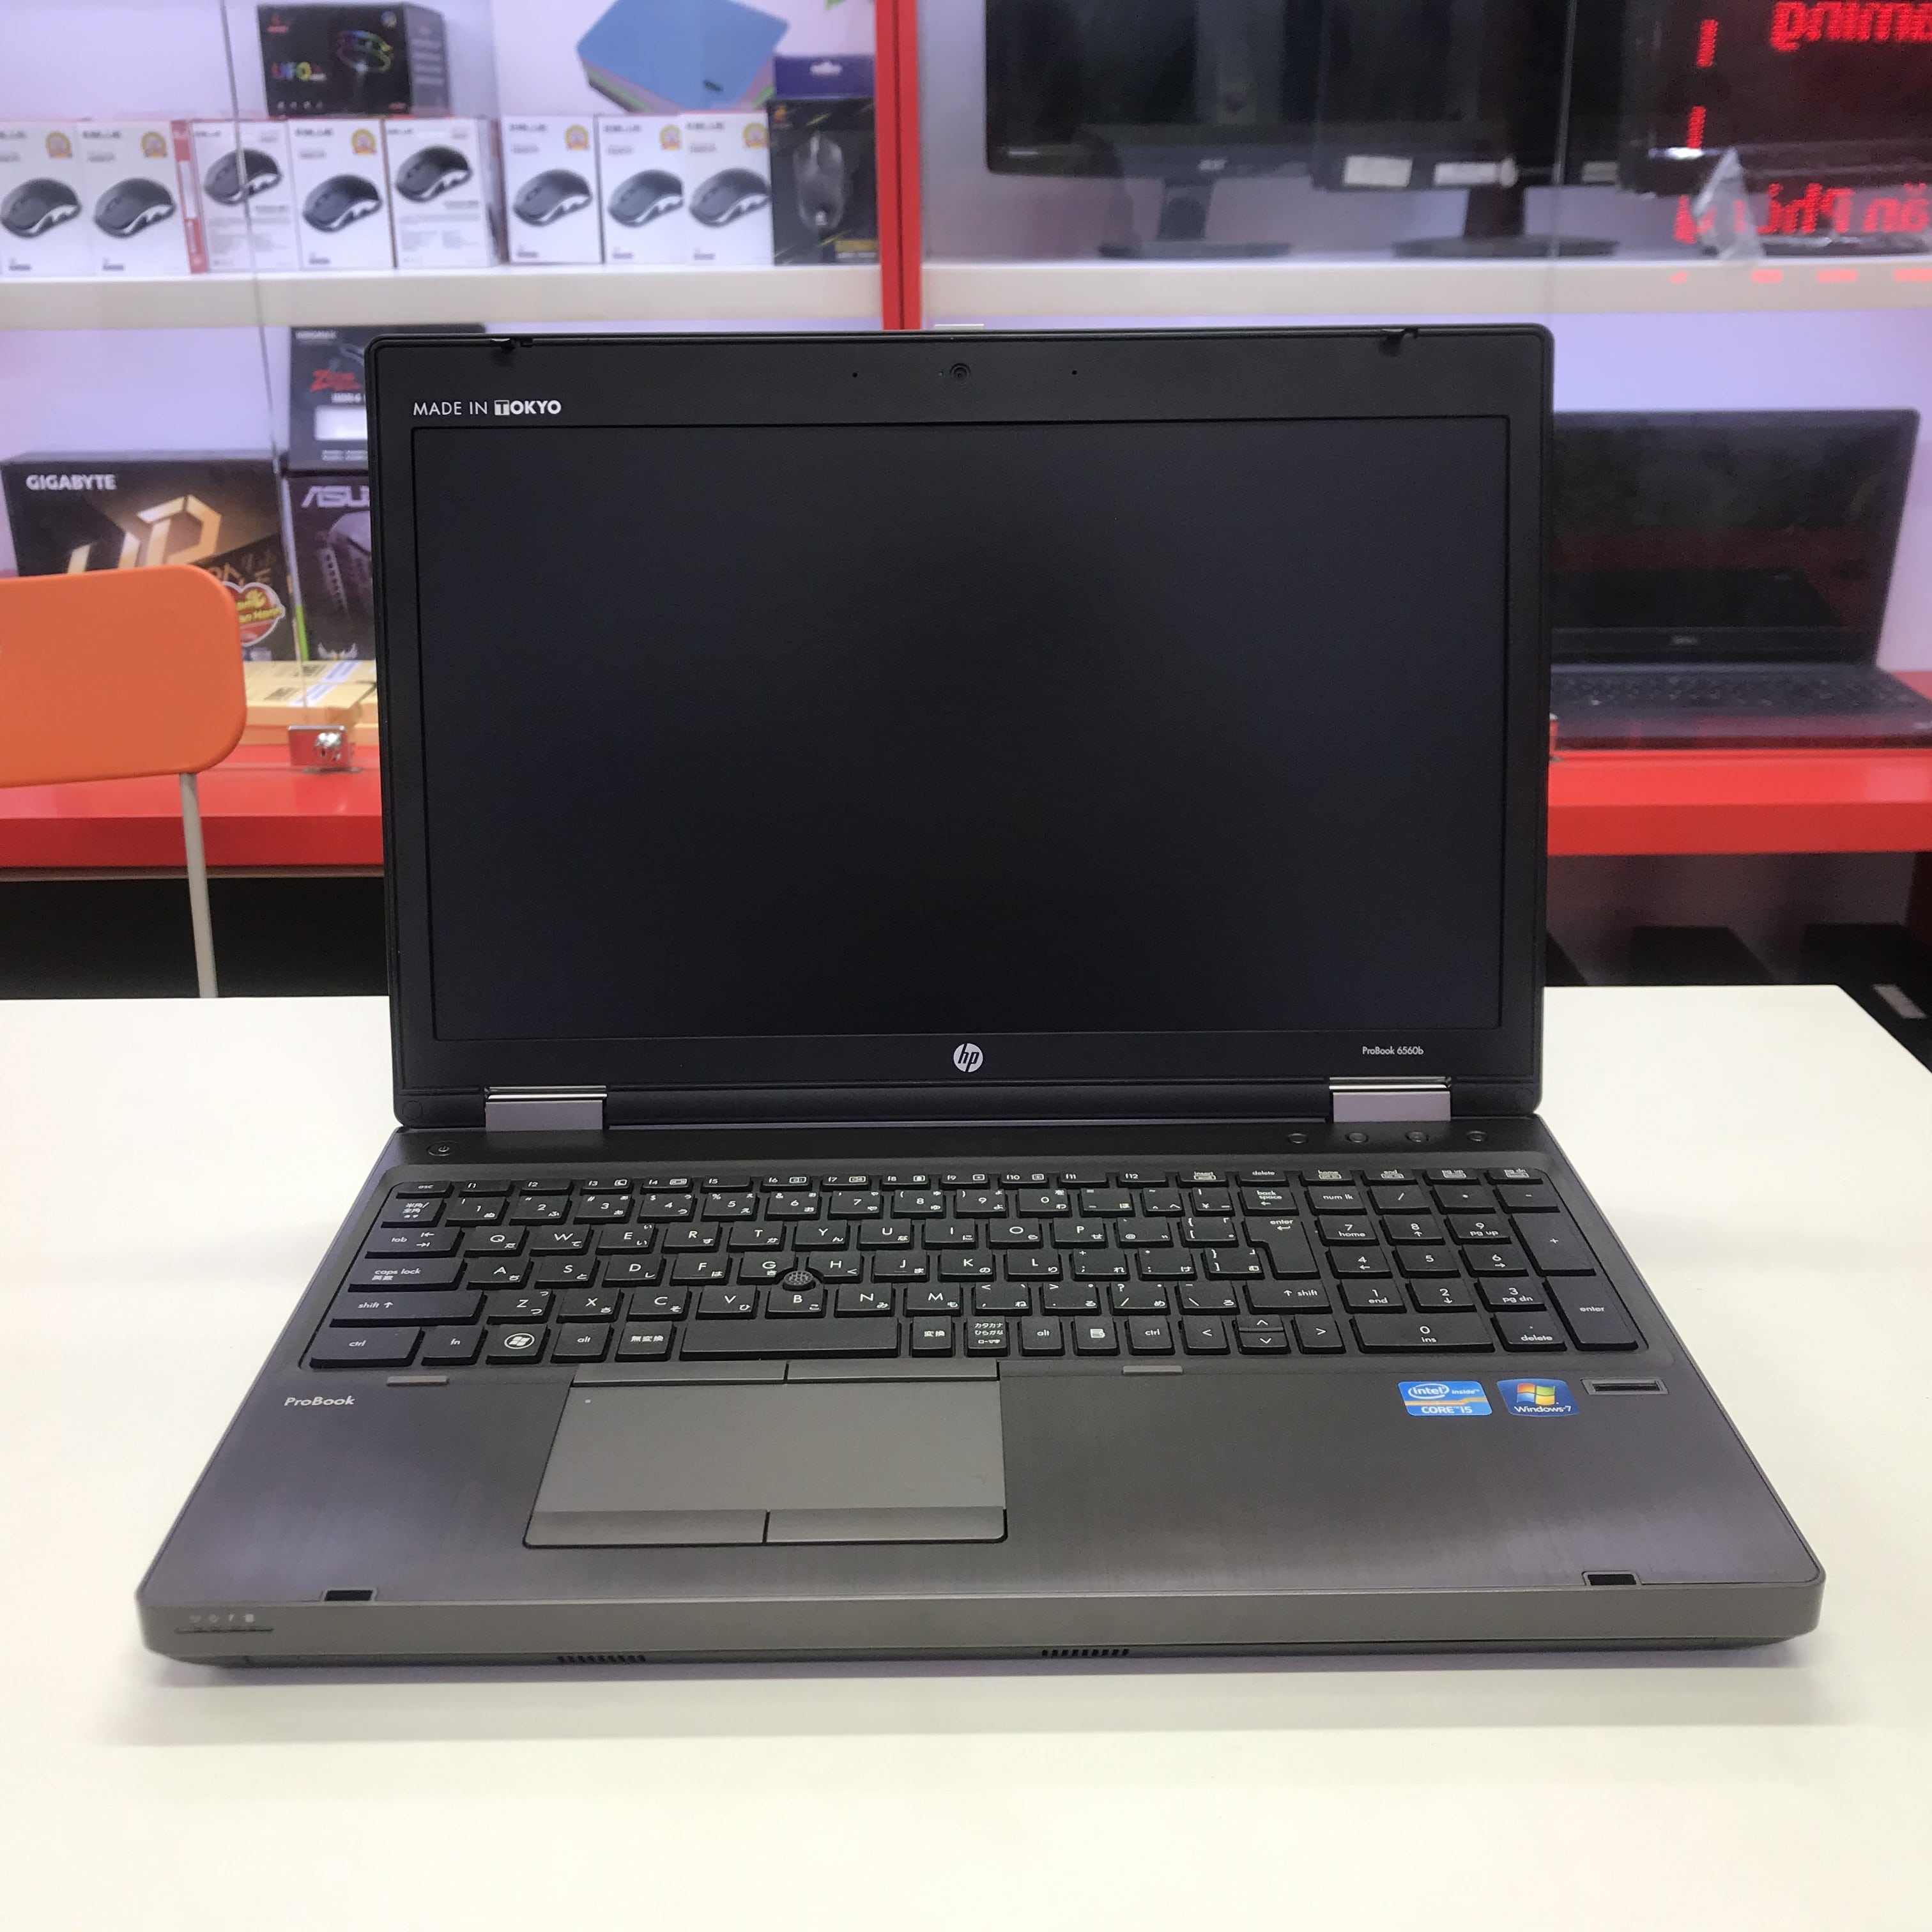 HP Probook 6560B Core i5 2430M, Ram 4GB/ SSD 120GB/ HD Graphics 3000